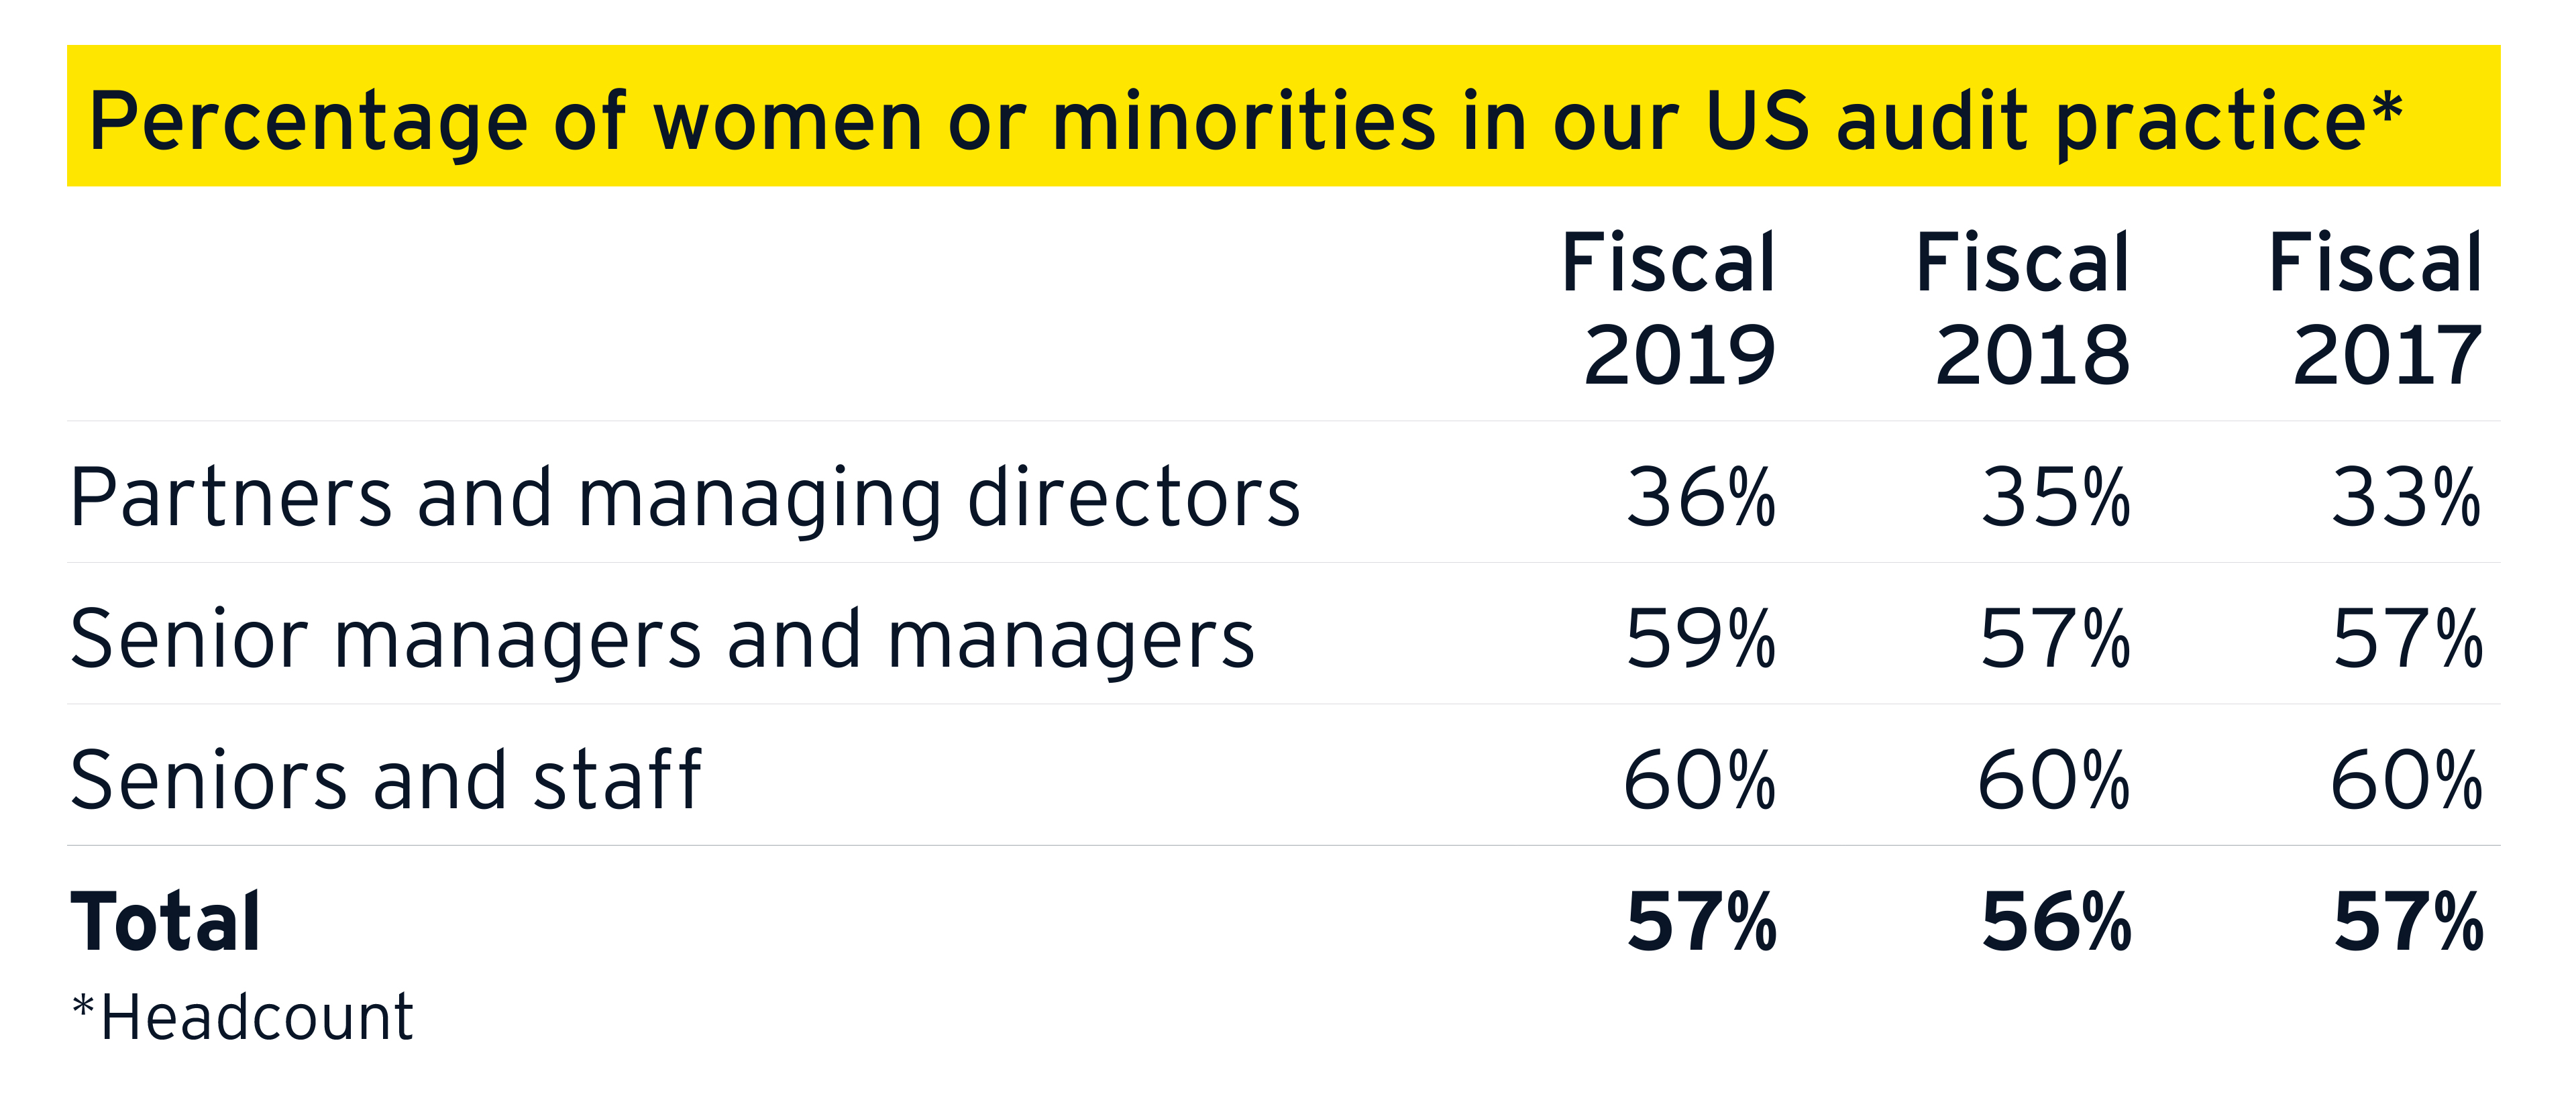 Percentage of women or minorities in our US audit practice